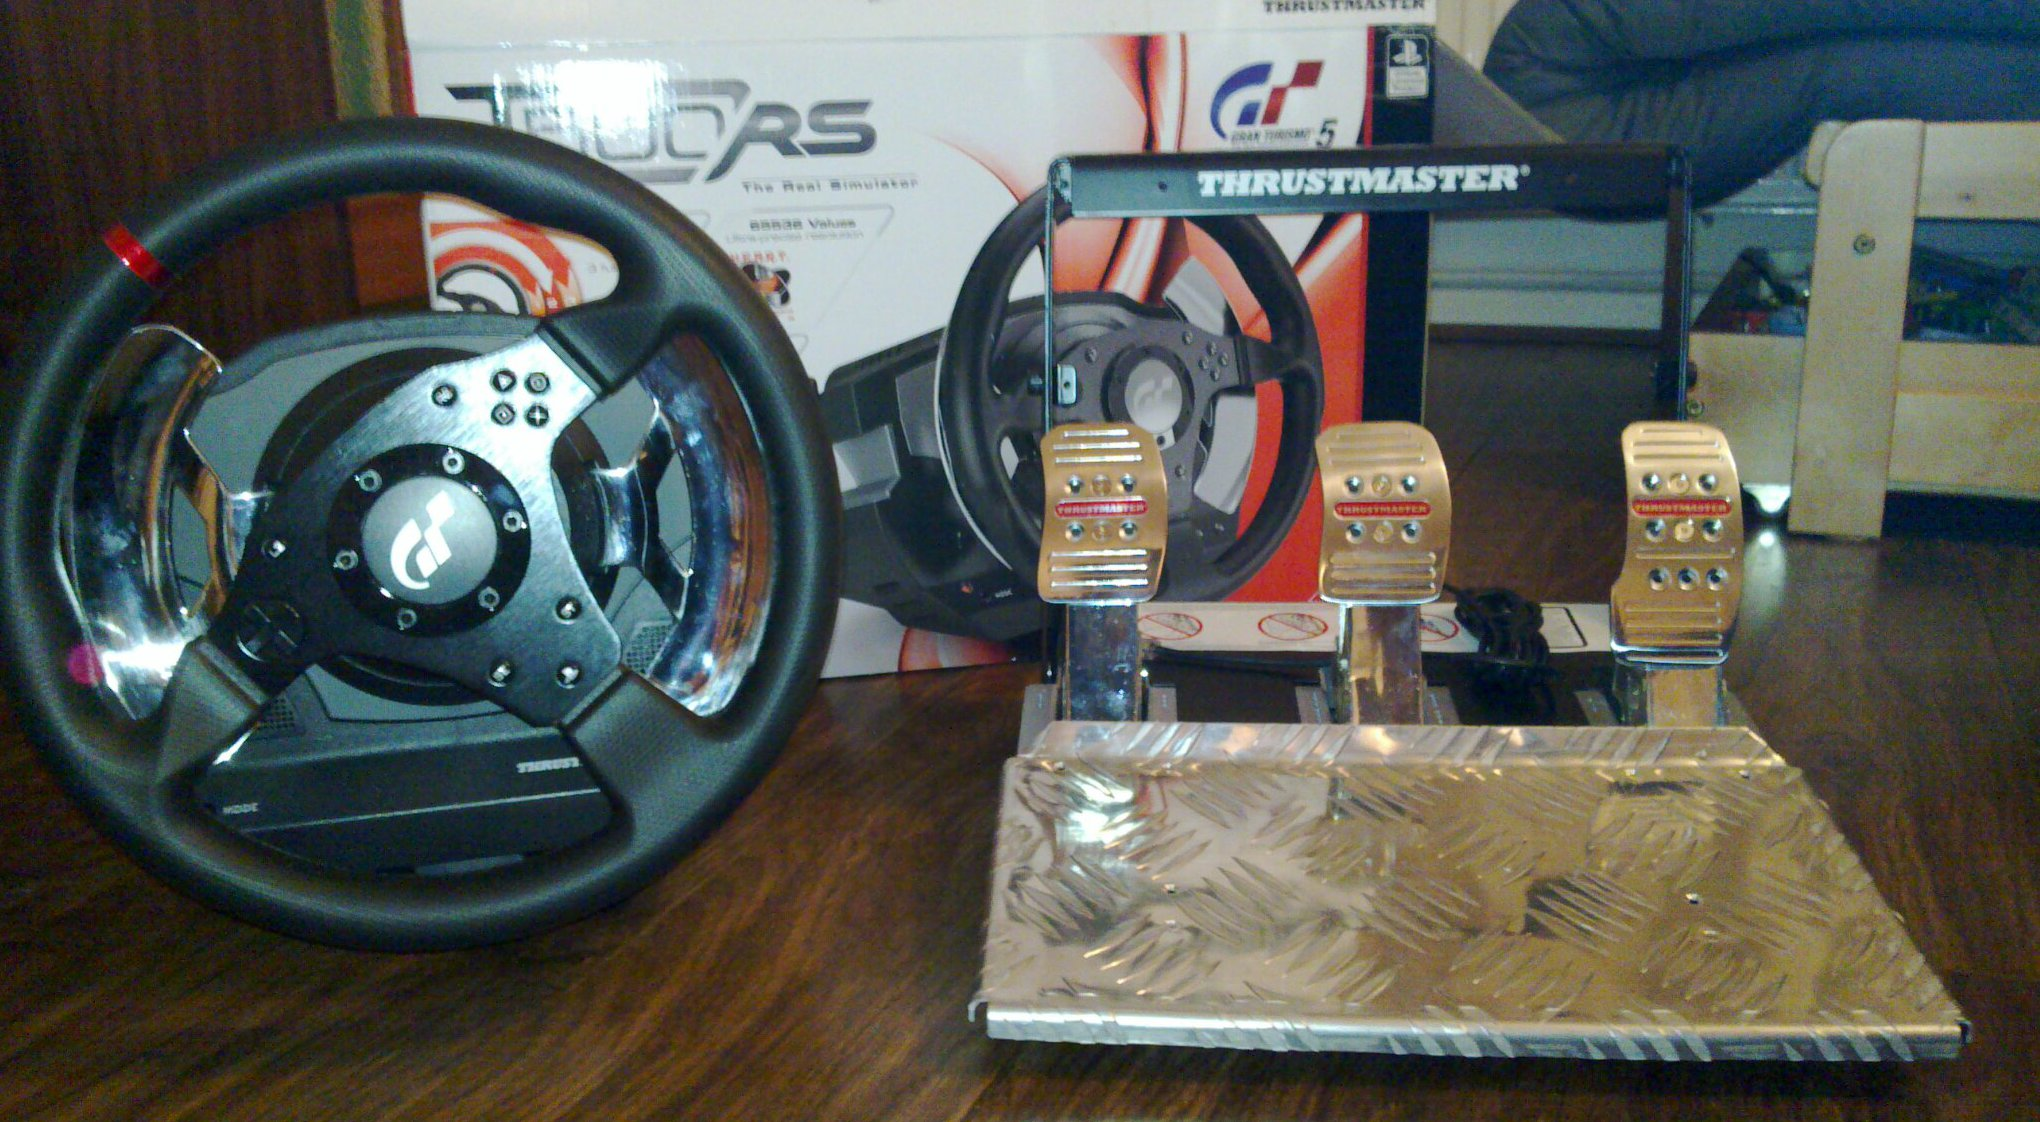 Thrustmaster T500 RS reviewed -the ultimate racing wheel?